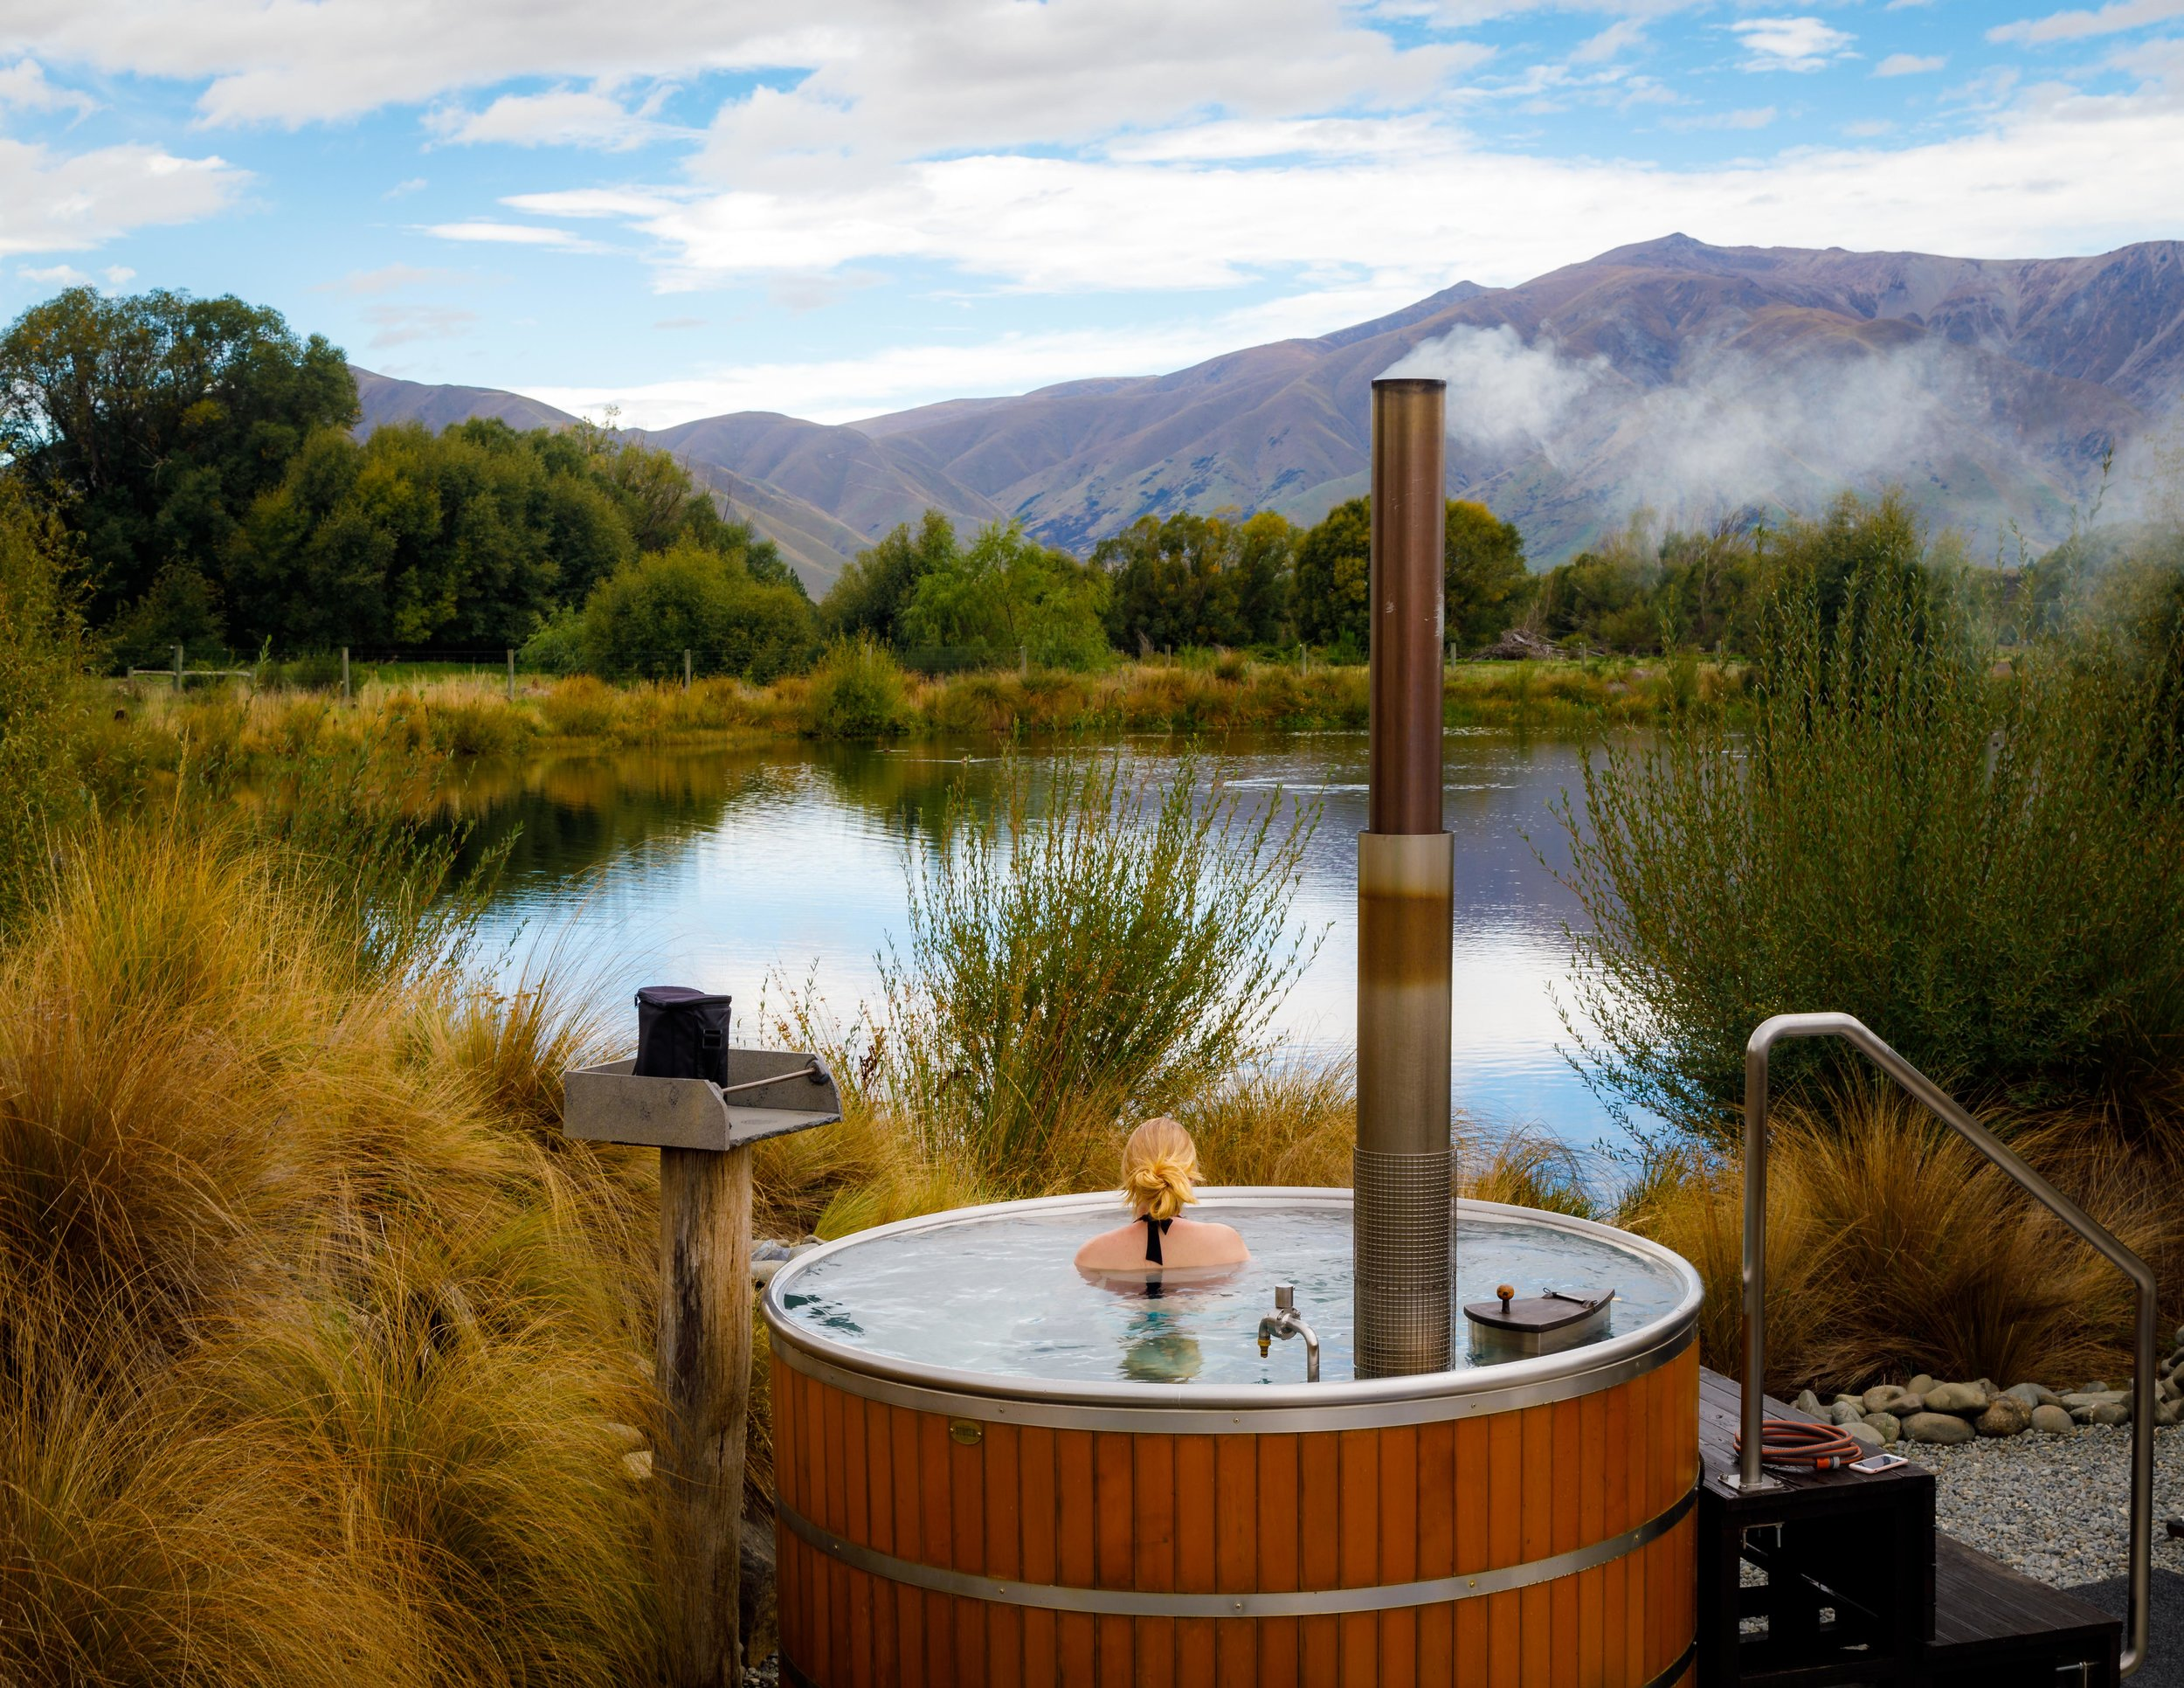 Best hot springs in New Zealand (South Island): Omarama near Twizel